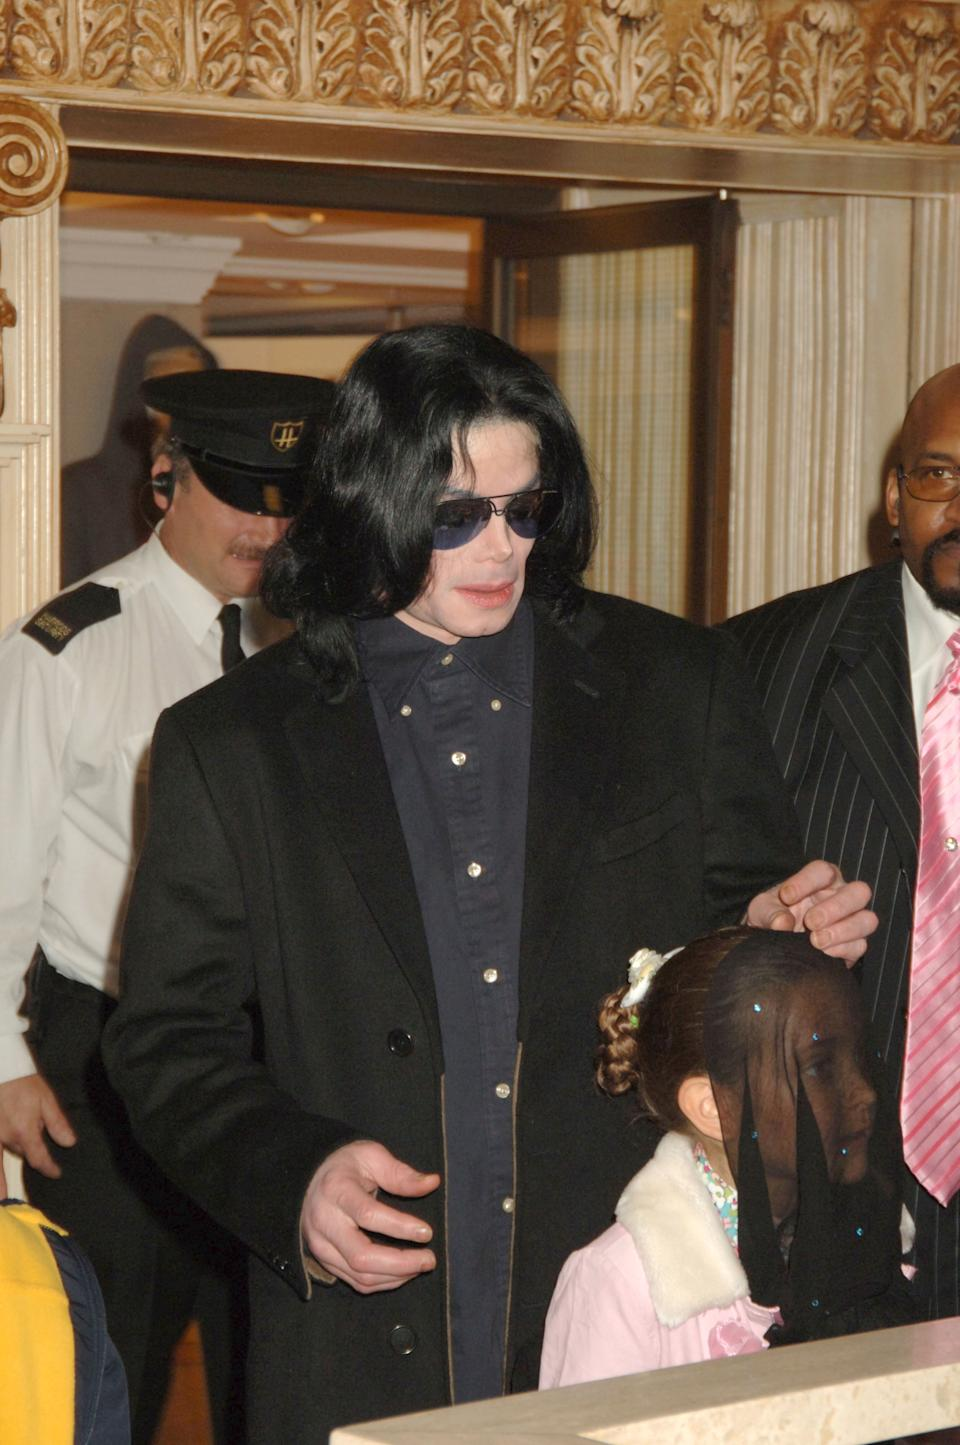 LONDON - OCTOBER 12:  (EMBARGOED FOR PUBLICATION IN UK TABLOID NEWSPAPERS UNTIL 48 HOURS AFTER CREATE DATE AND TIME) Singer Michael Jackson walks with his daughter, Paris, as they visit Harrods October 12, 2005 in London, England.  (Photo by Dave M. Benett/Getty Images)